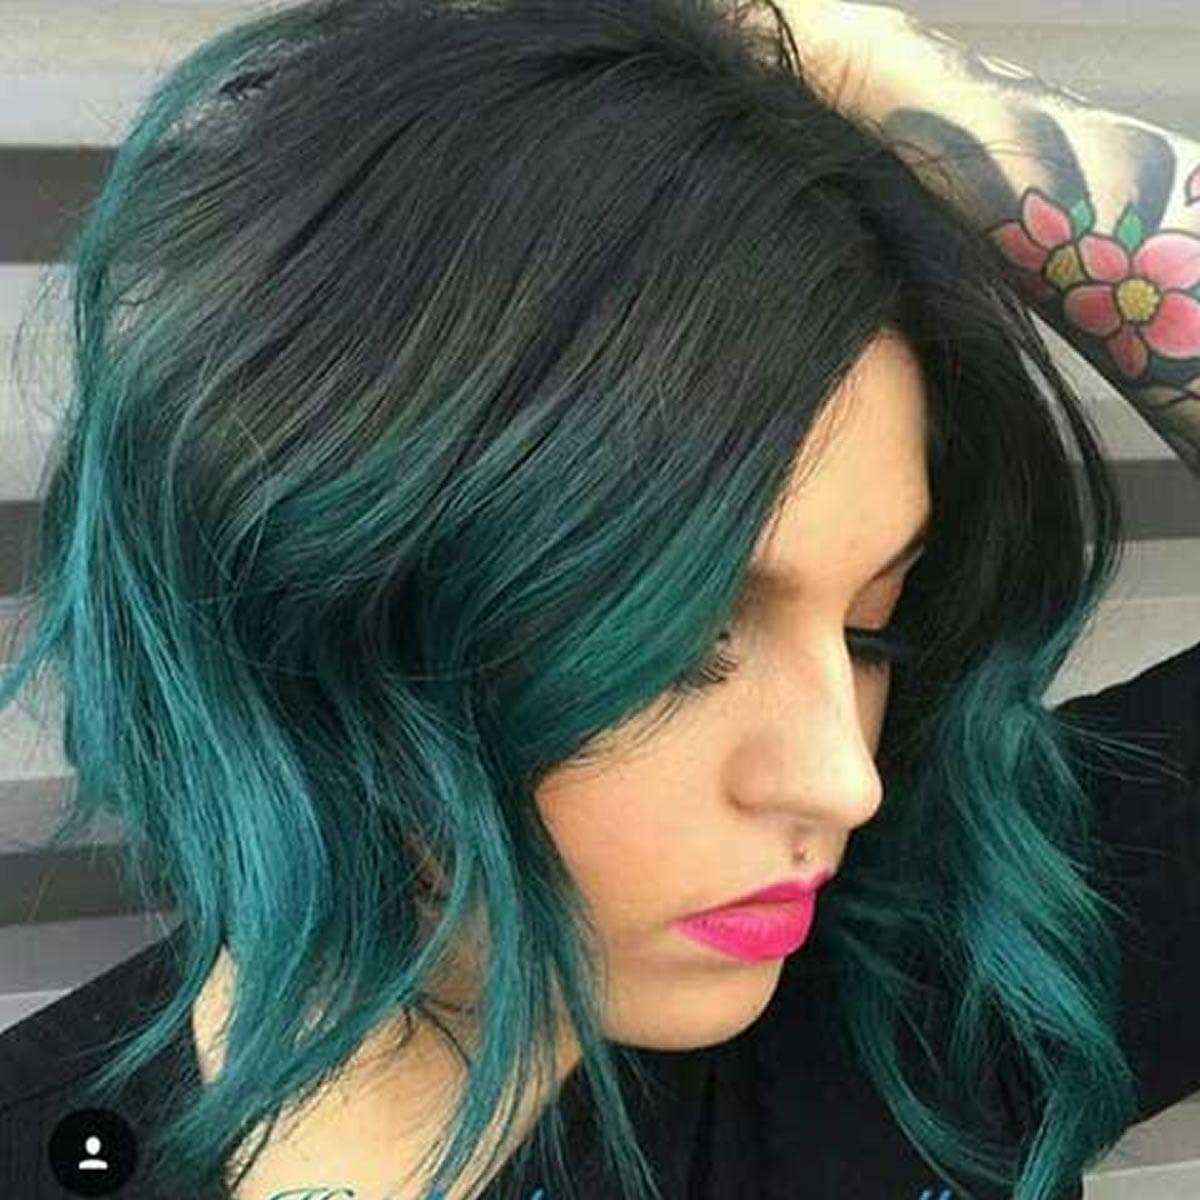 hair coloring styles for short hair 50 the coolest hairstyles and hair colors for 5653 | Short Hairstyles and Hair Colors for Women 2018 2019 32